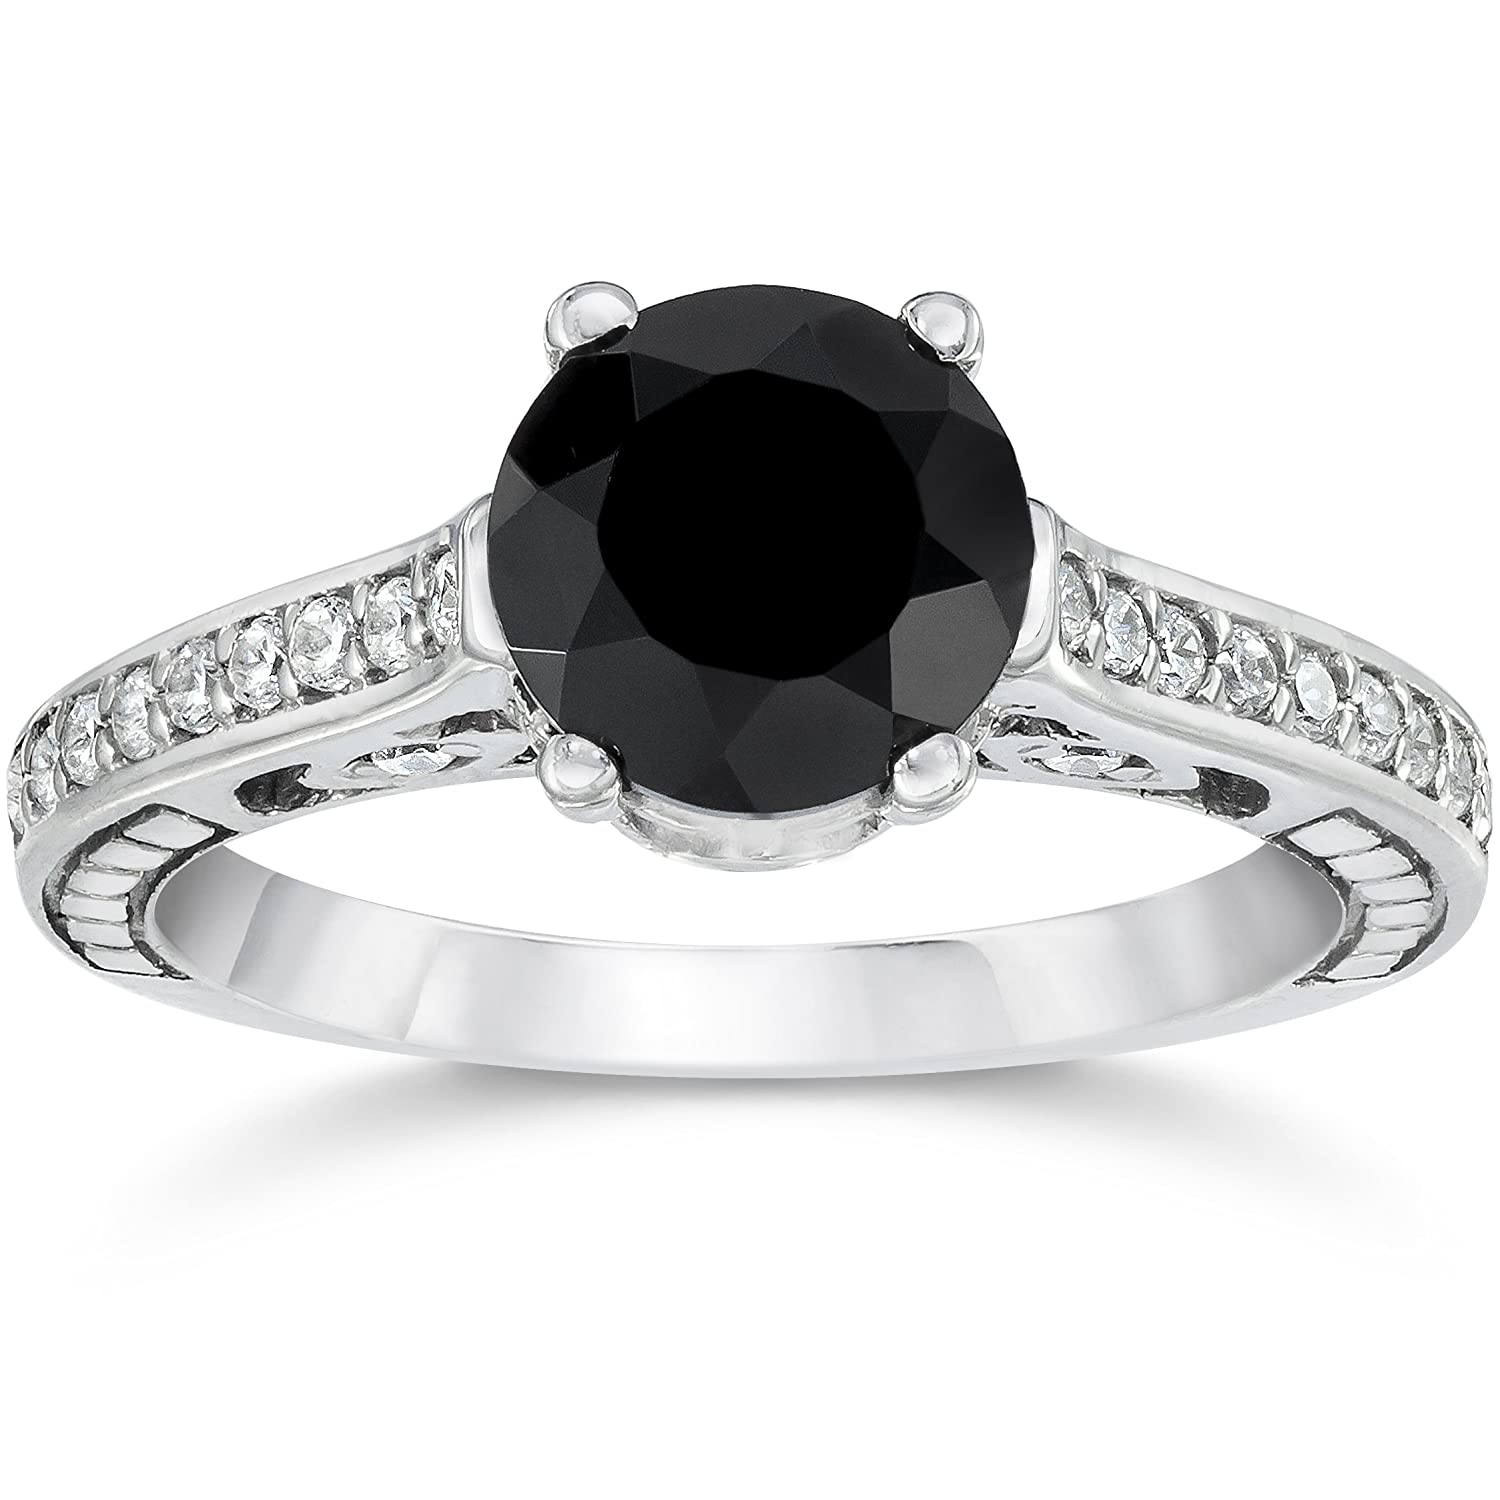 2 5 8ct Vintage Black Diamond Engagement Ring 14K White Gold